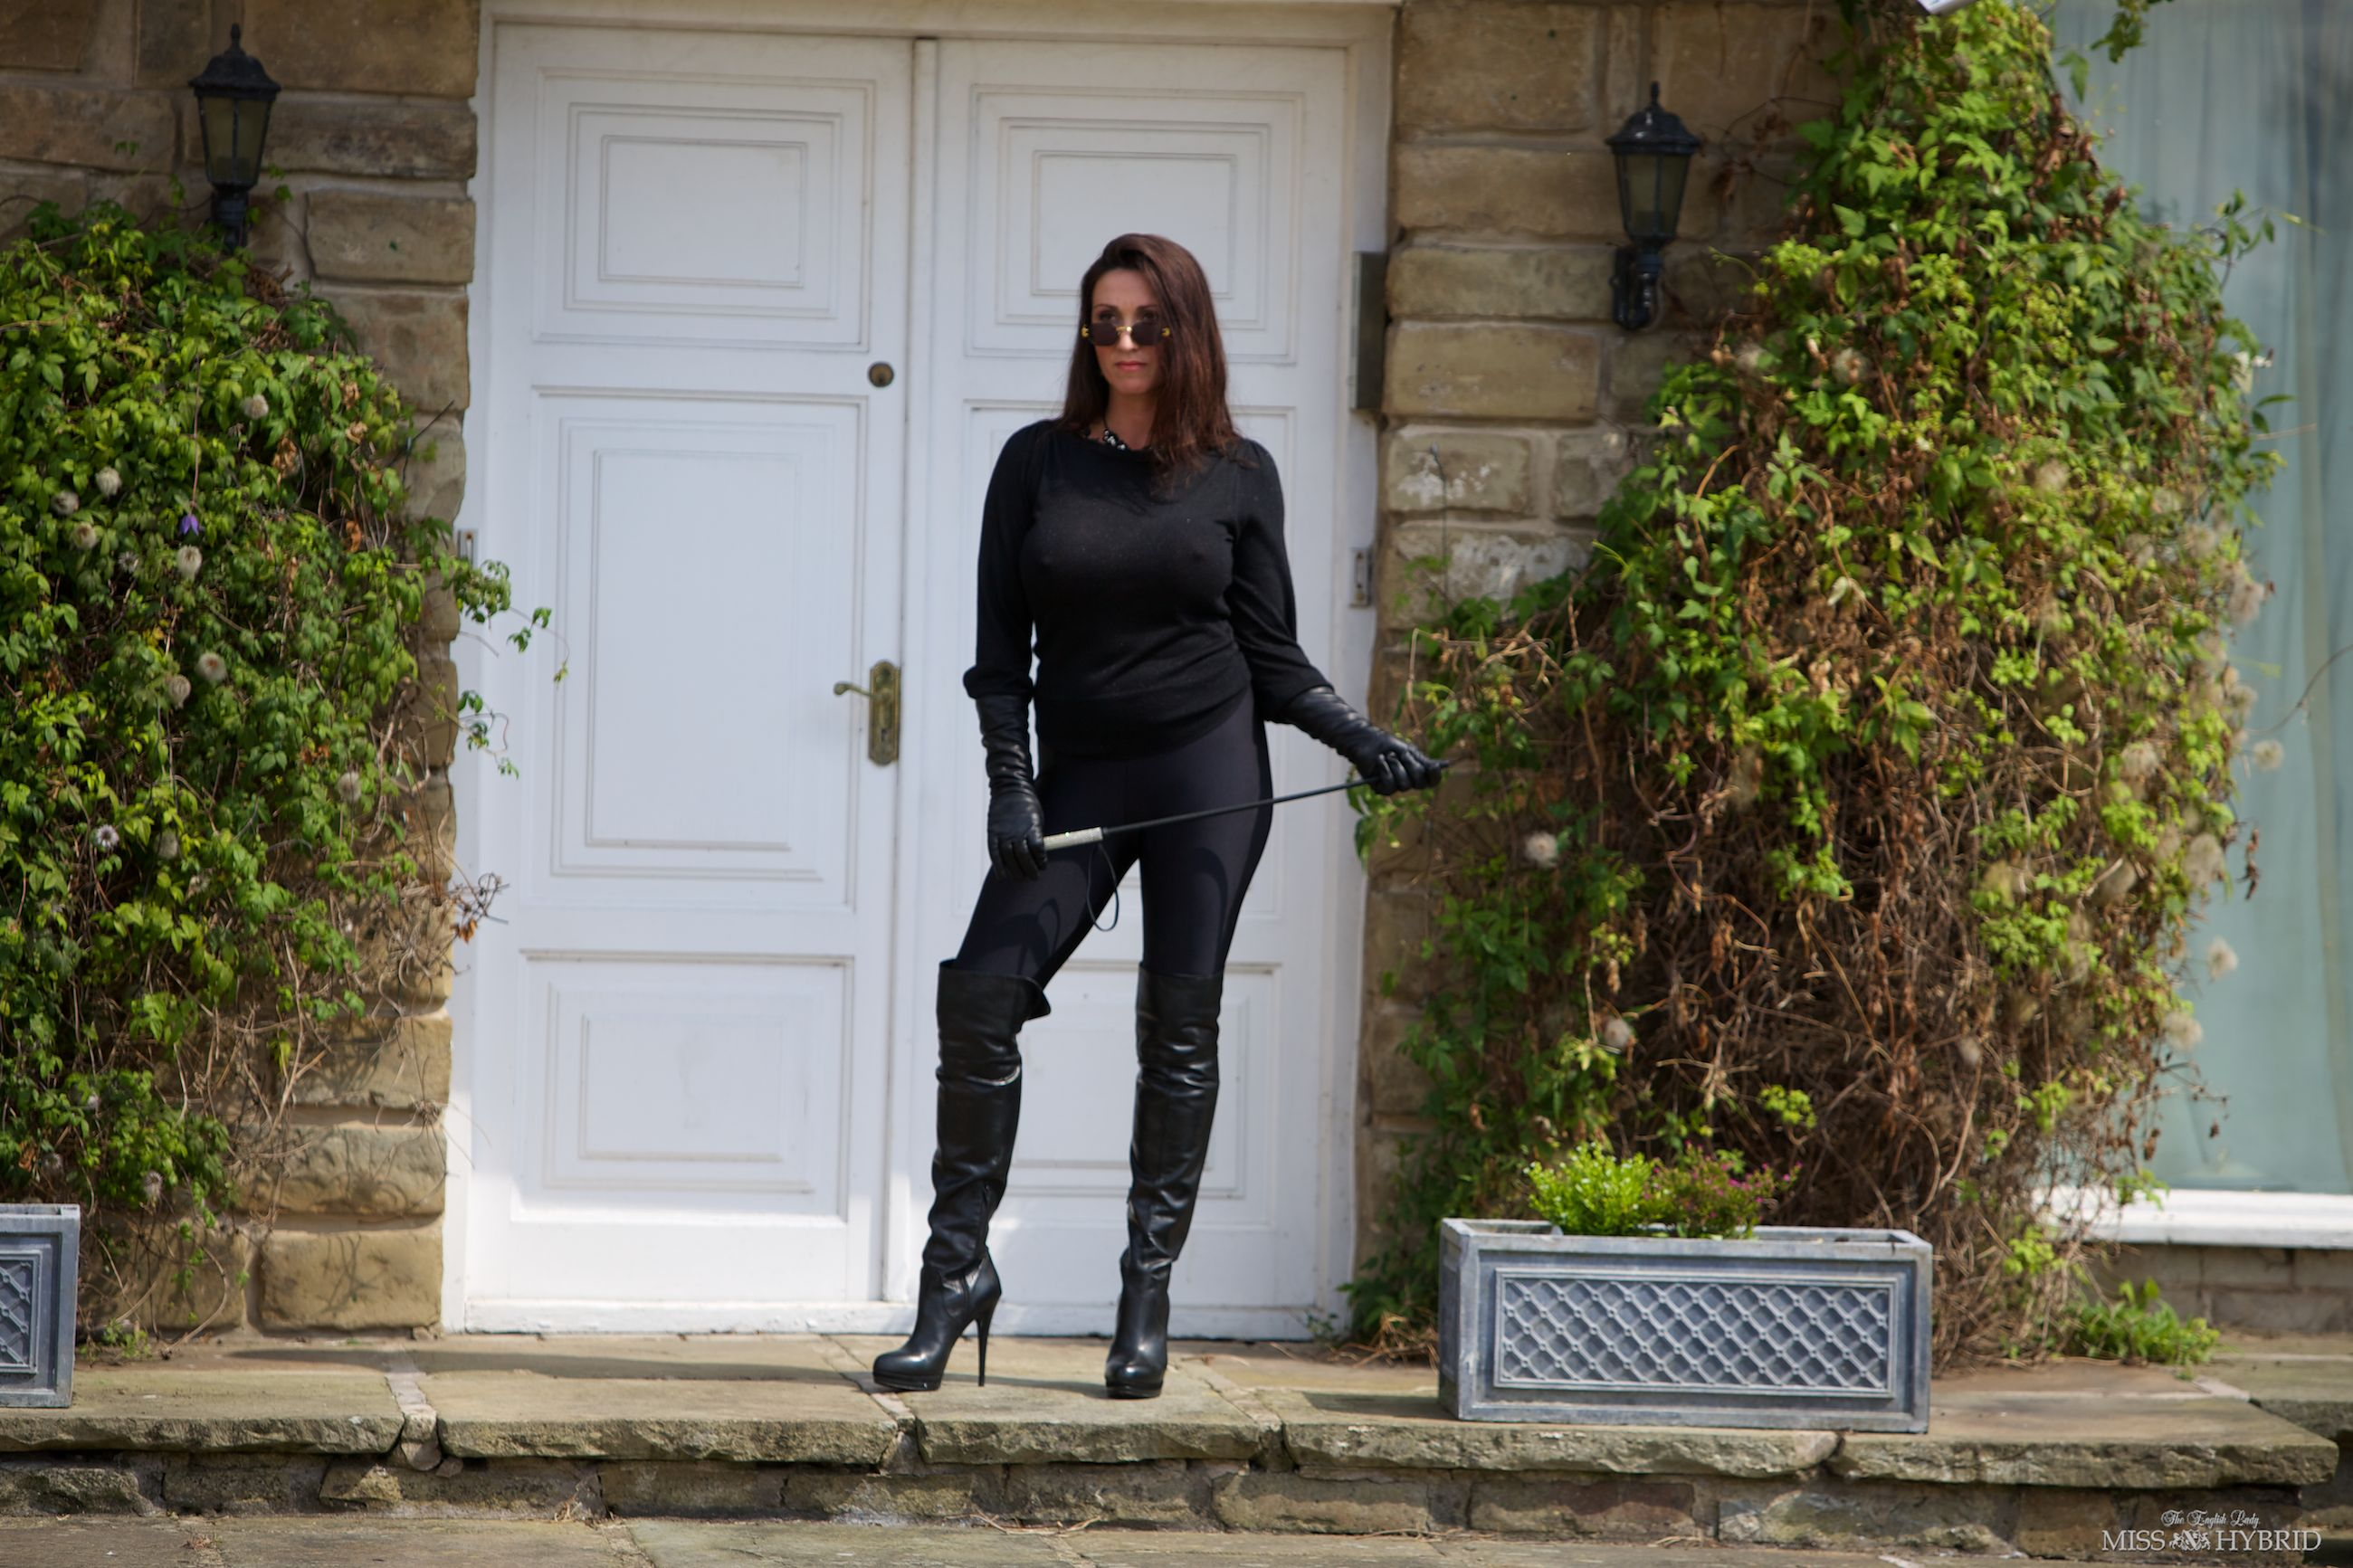 lycra leather boots, Miss Hybrid, gloves, riding crop, outdoors